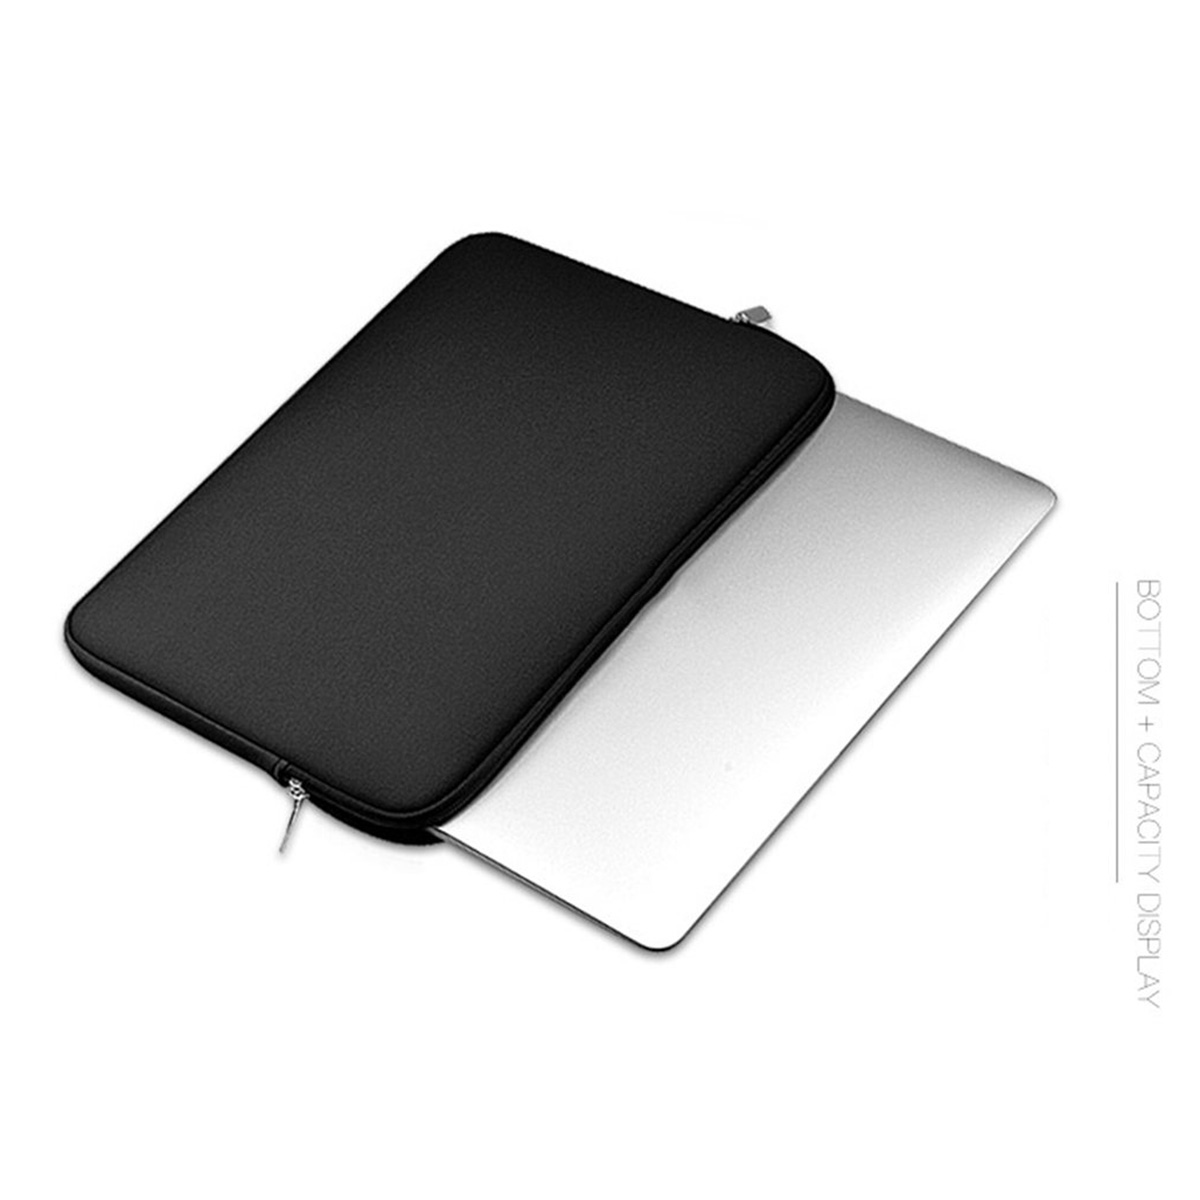 Laptop Sleeve 14 15.6 Inch Notebook Bag 13.3 for MacBook Air Pro 13 Case Laptop Bag 11 13 15 Inch Protective Case Computer CaseLaptop Sleeve 14 15.6 Inch Notebook Bag 13.3 for MacBook Air Pro 13 Case Laptop Bag 11 13 15 Inch Protective Case Computer Case